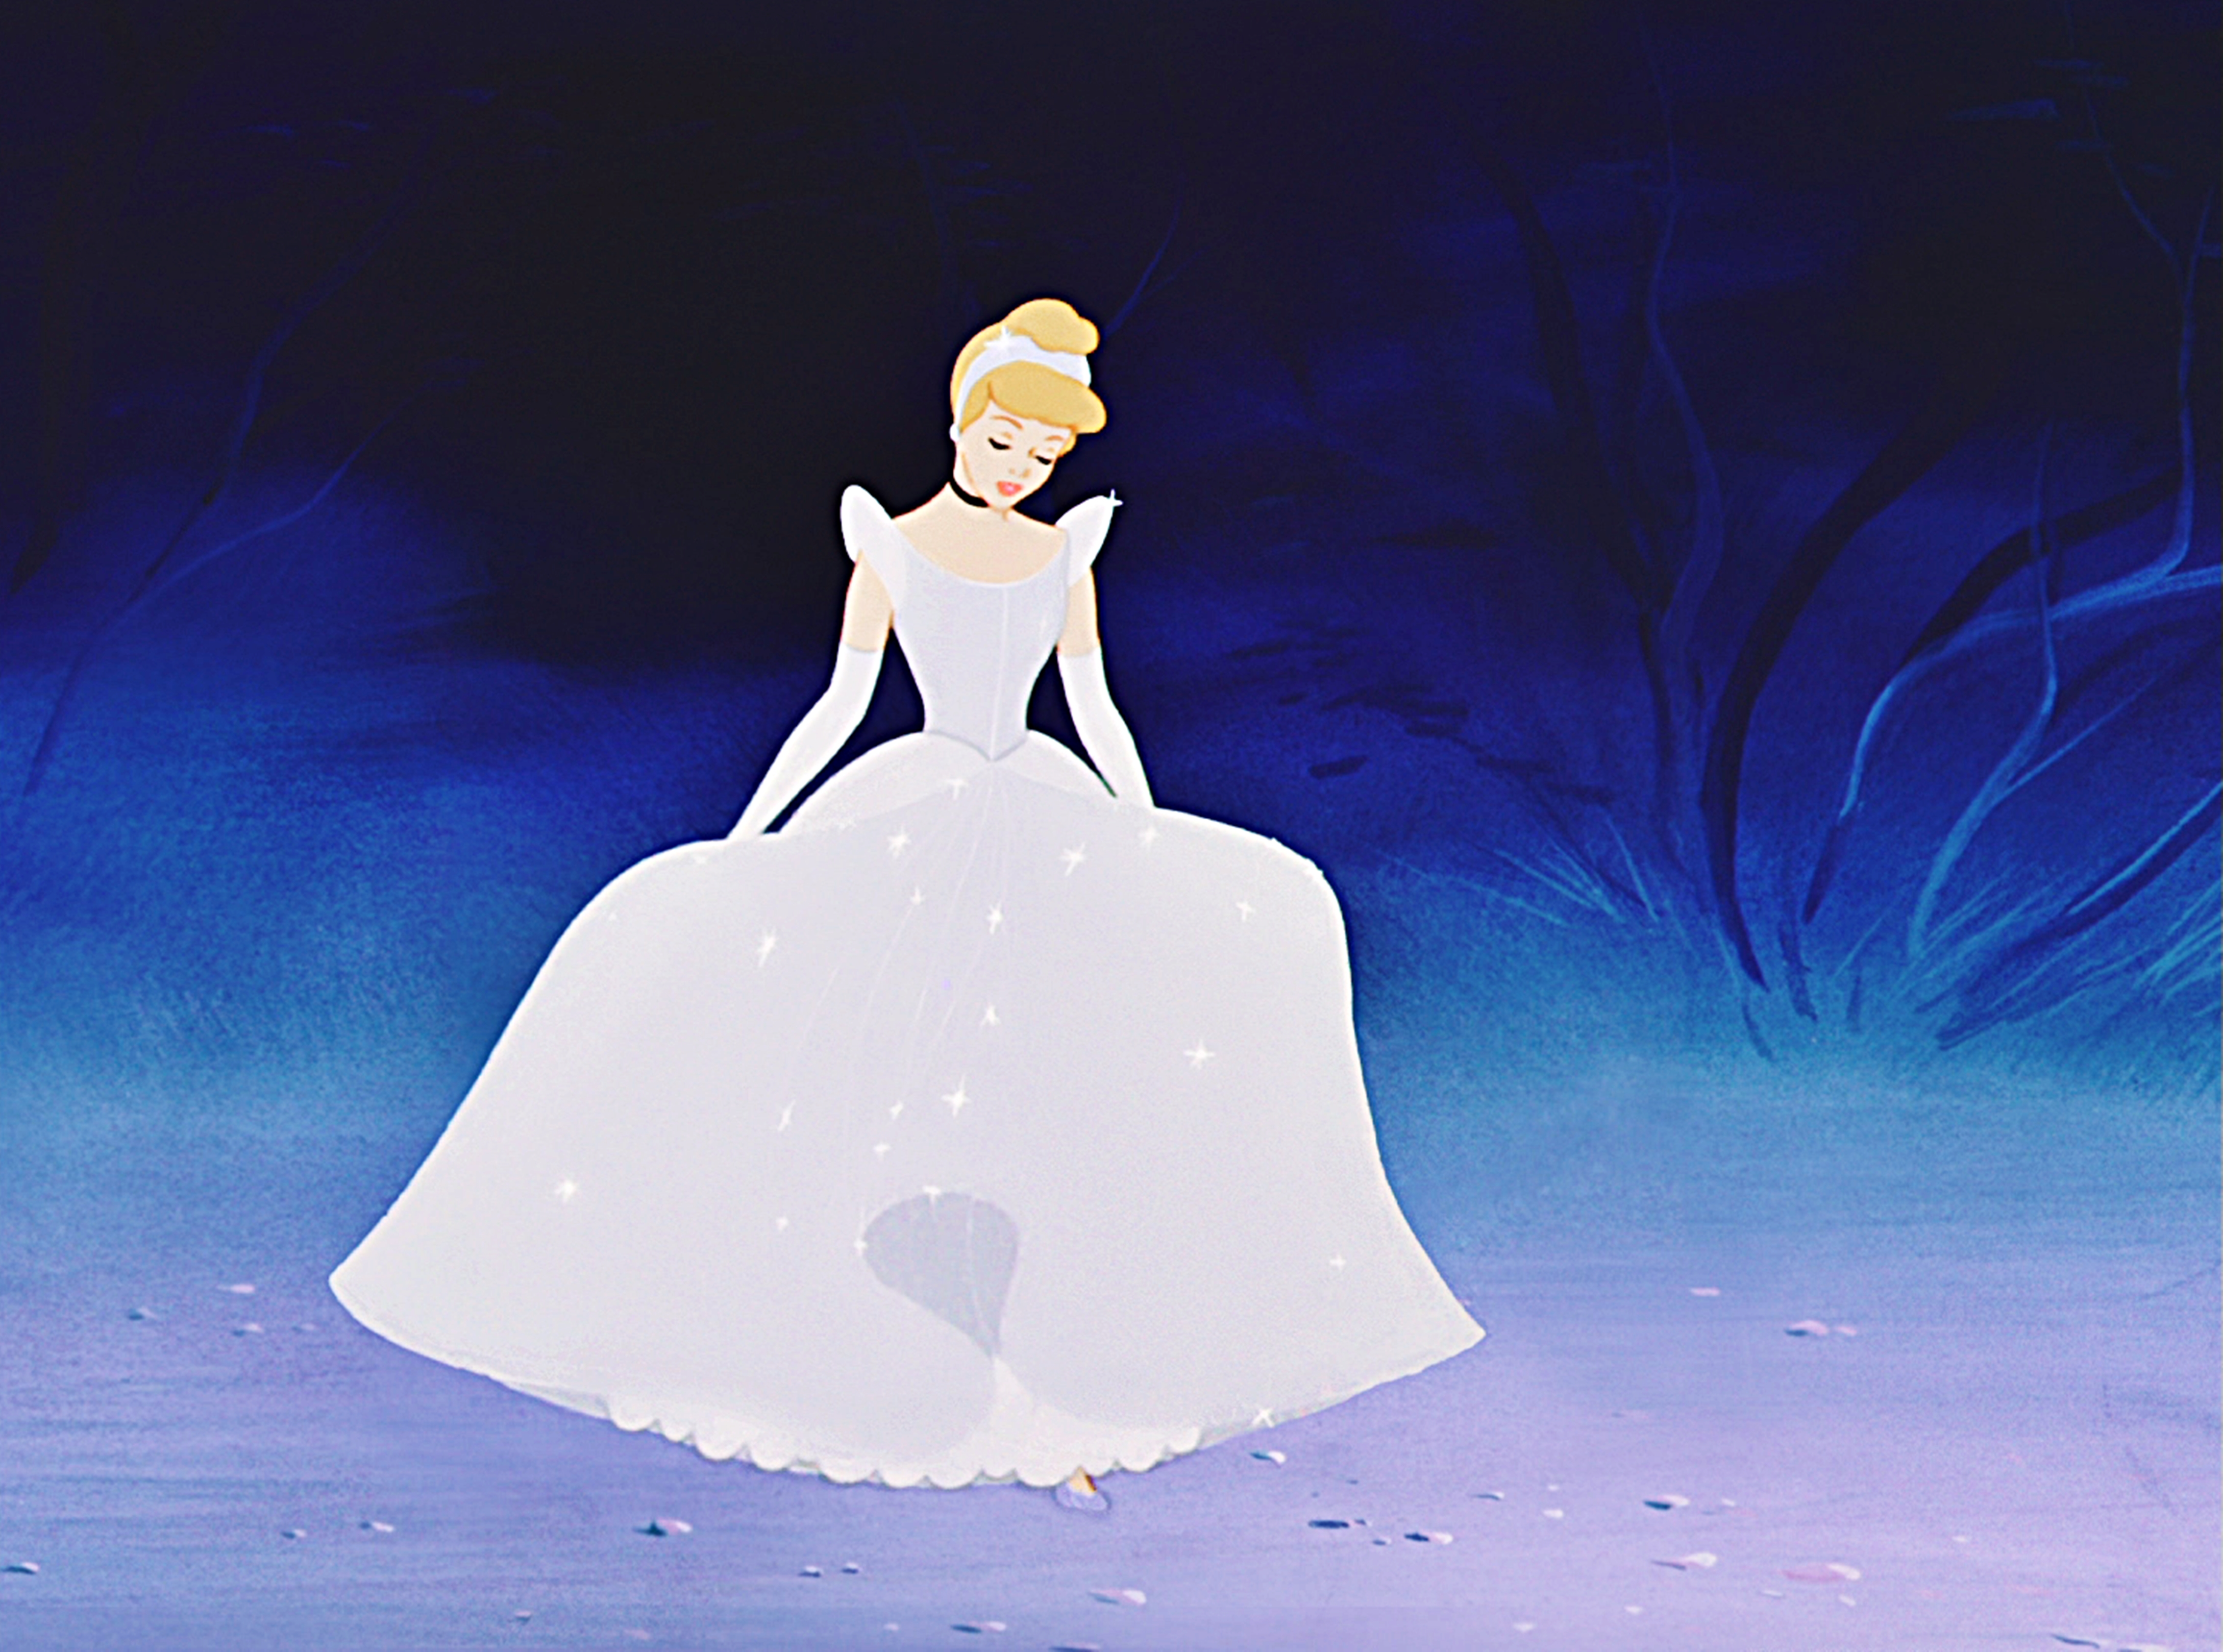 walt disney cinderella It is to them that walt disney is indebted for the theme of the studio's animated  film classic, cinderella after the brothers grimm left law school,.